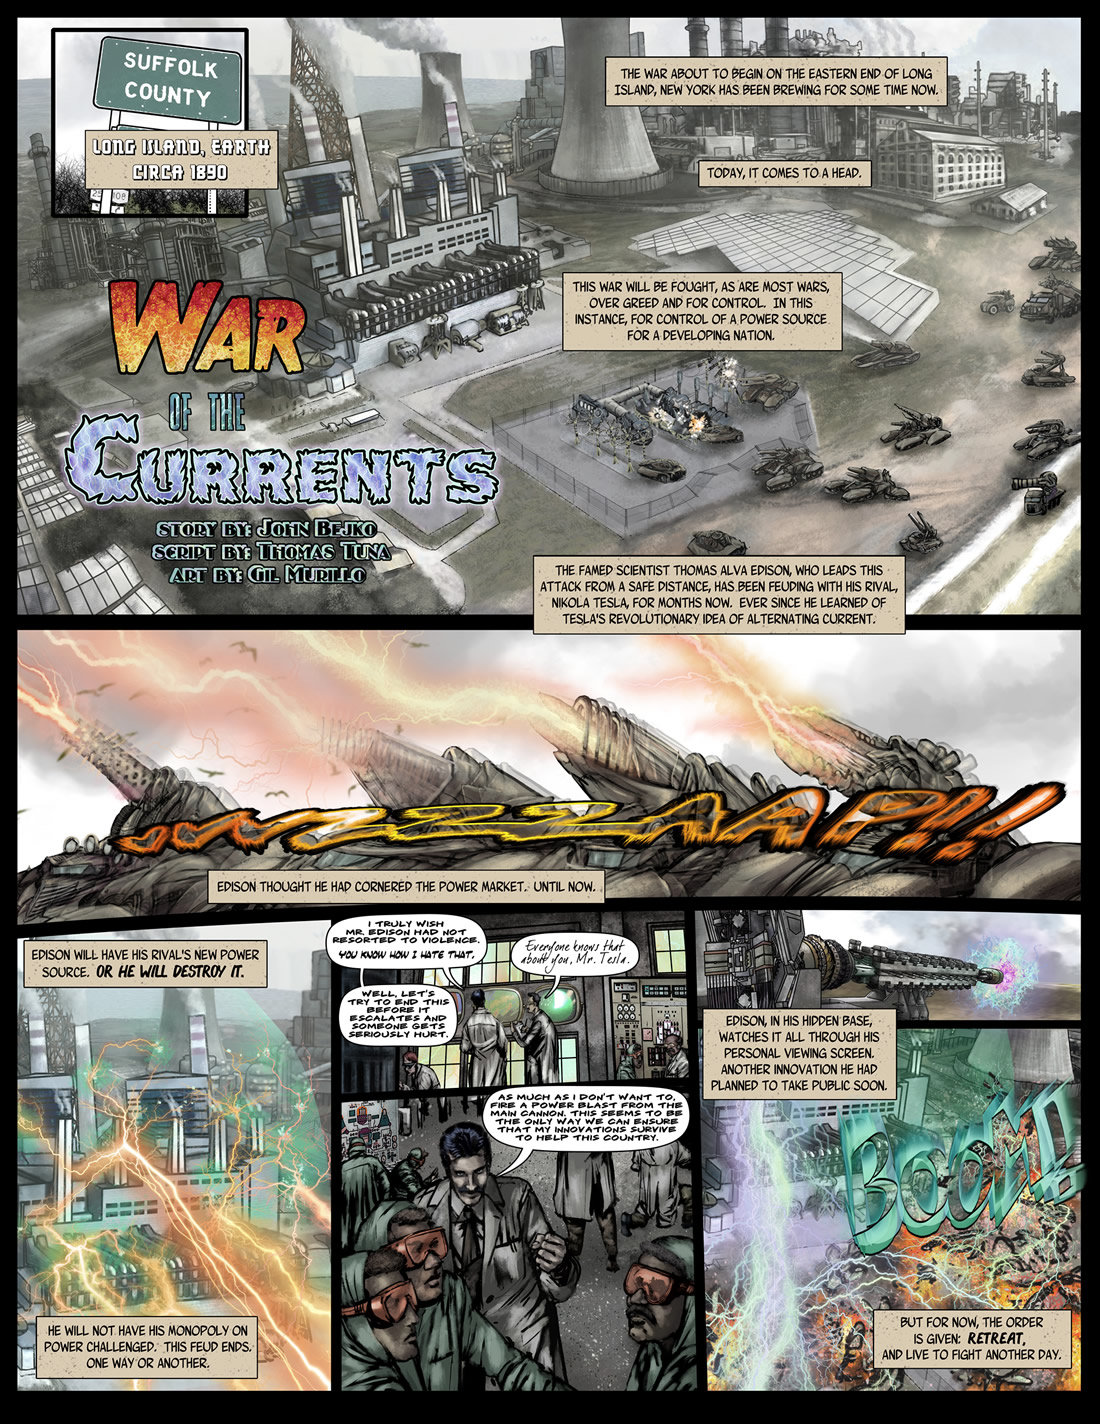 WAR OF THE CURRENTS PAGE 1.jpg